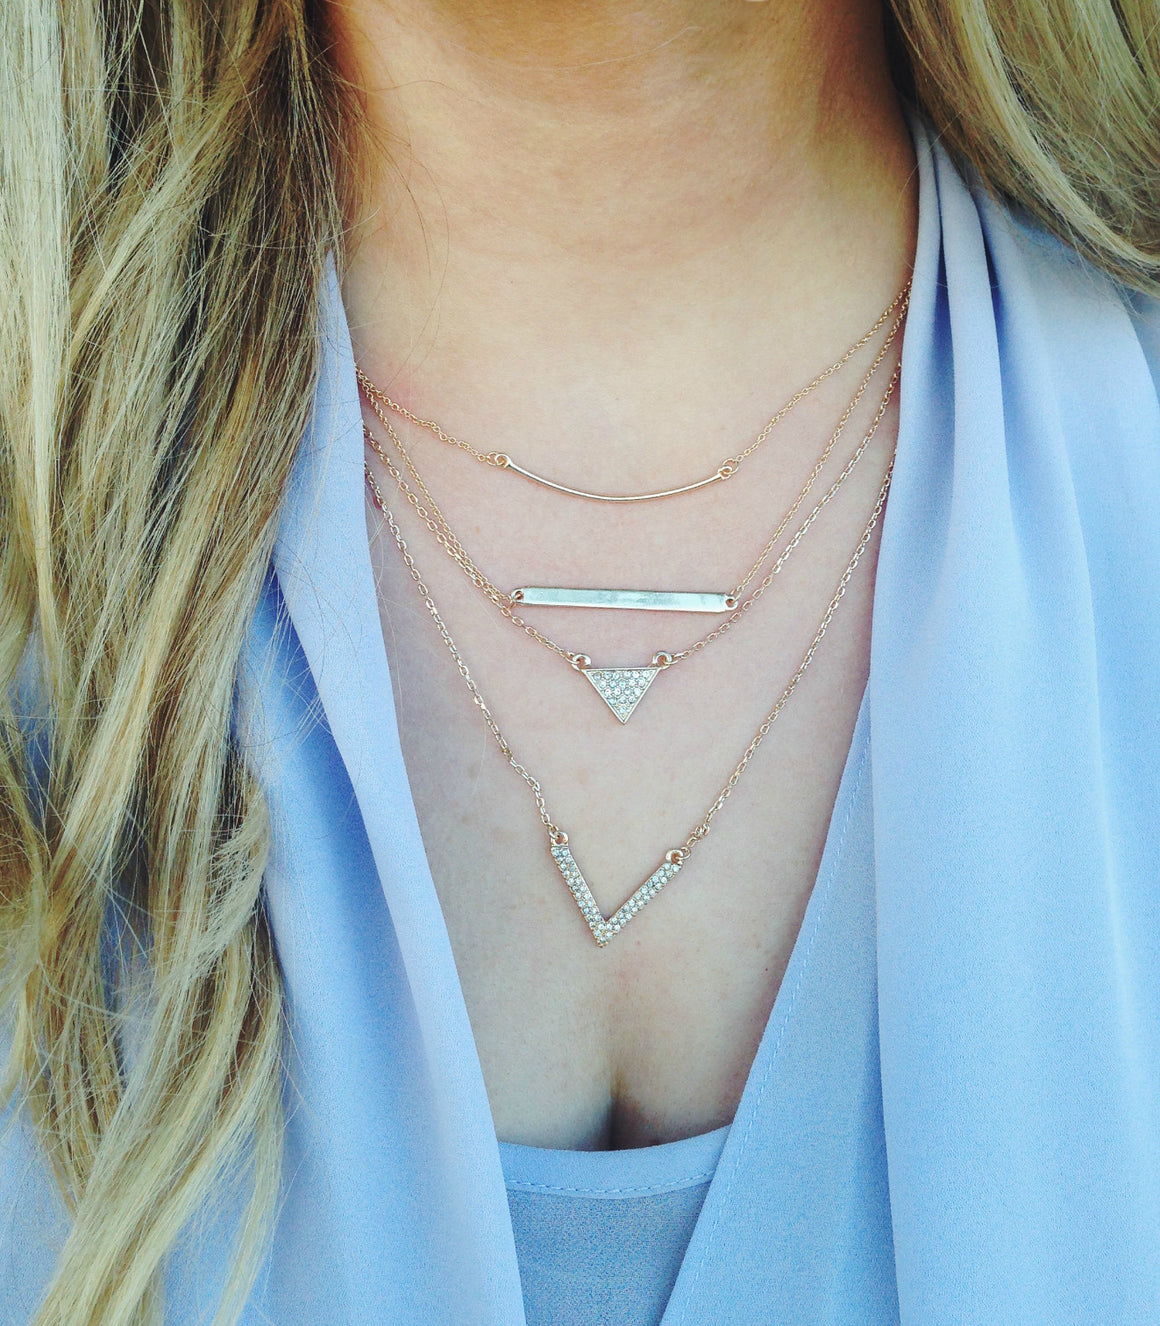 Geometric triangle two layer necklace.